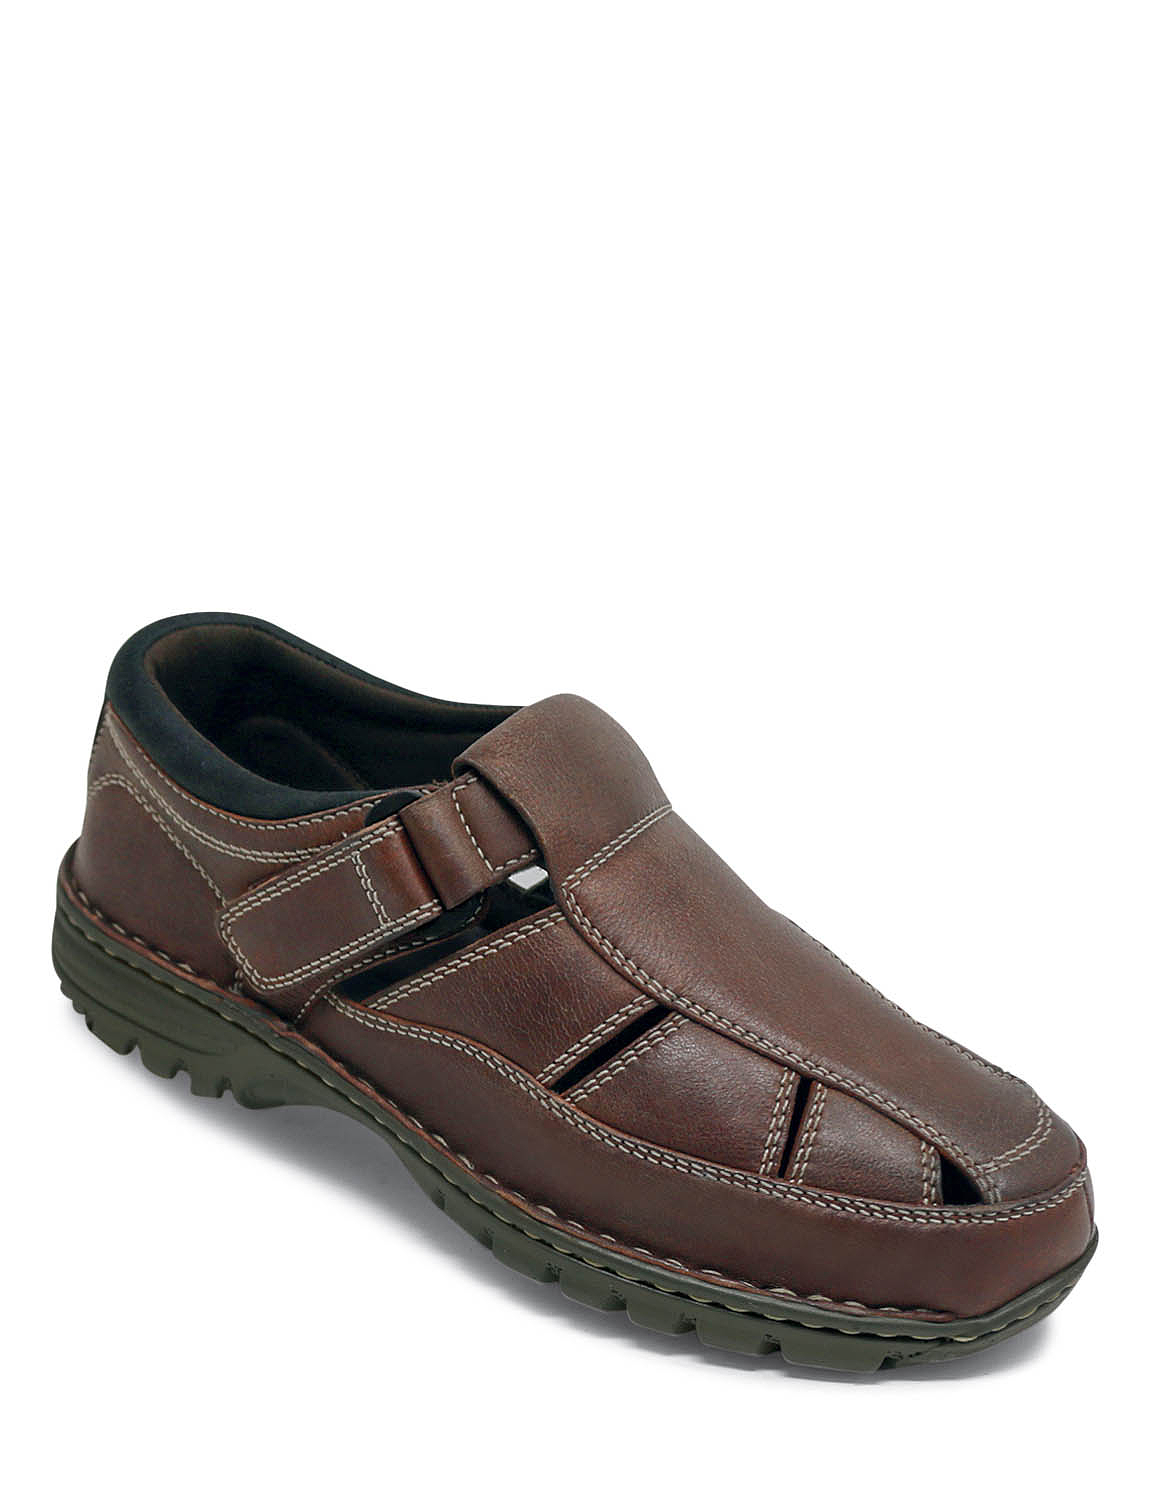 Leather Sandal Shoe - Brown